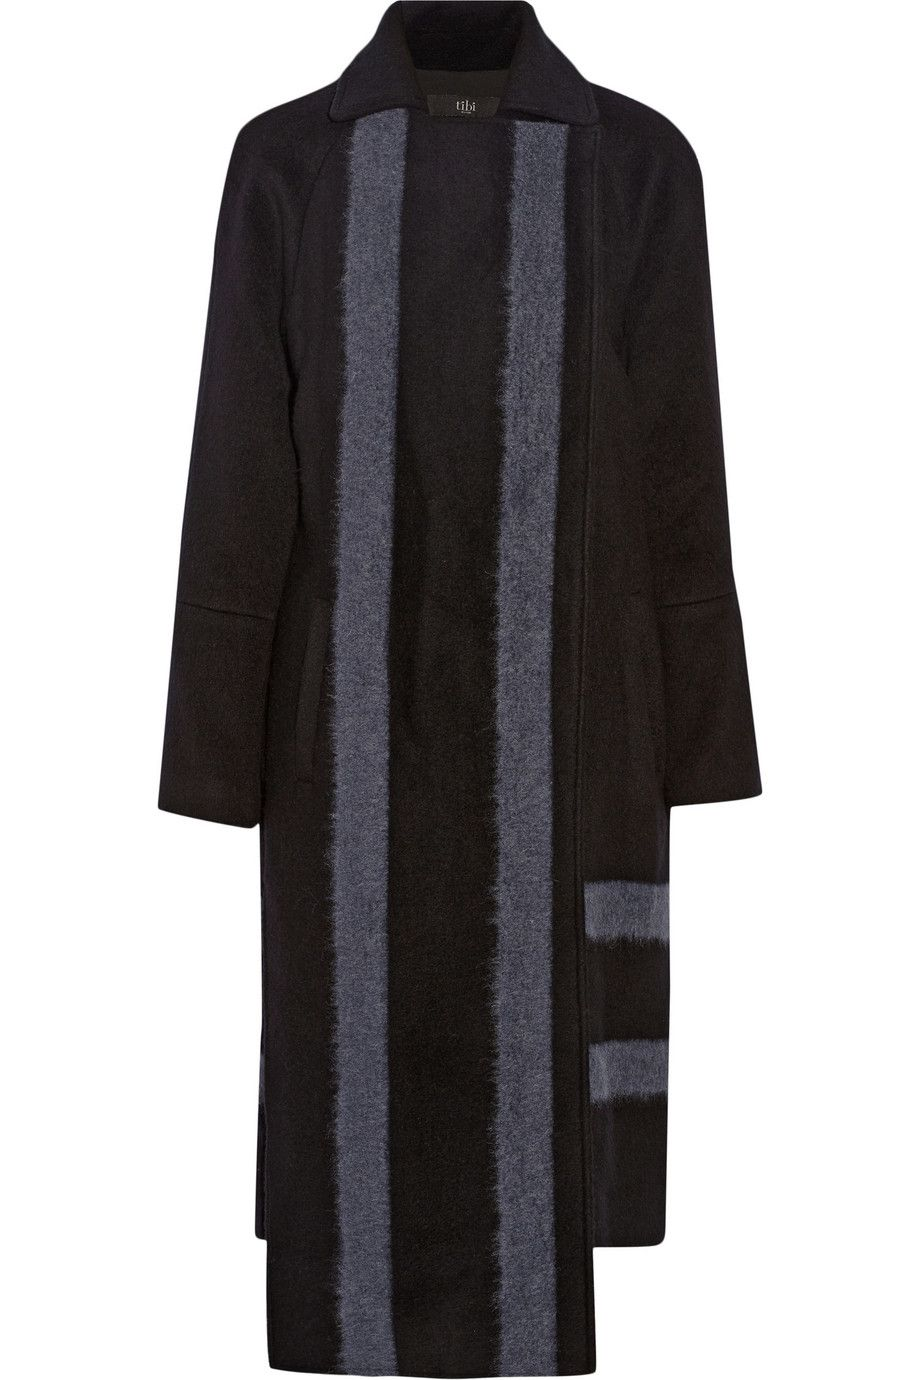 Shop on-sale Tibi Asymmetric wool-blend coat . Browse other ...